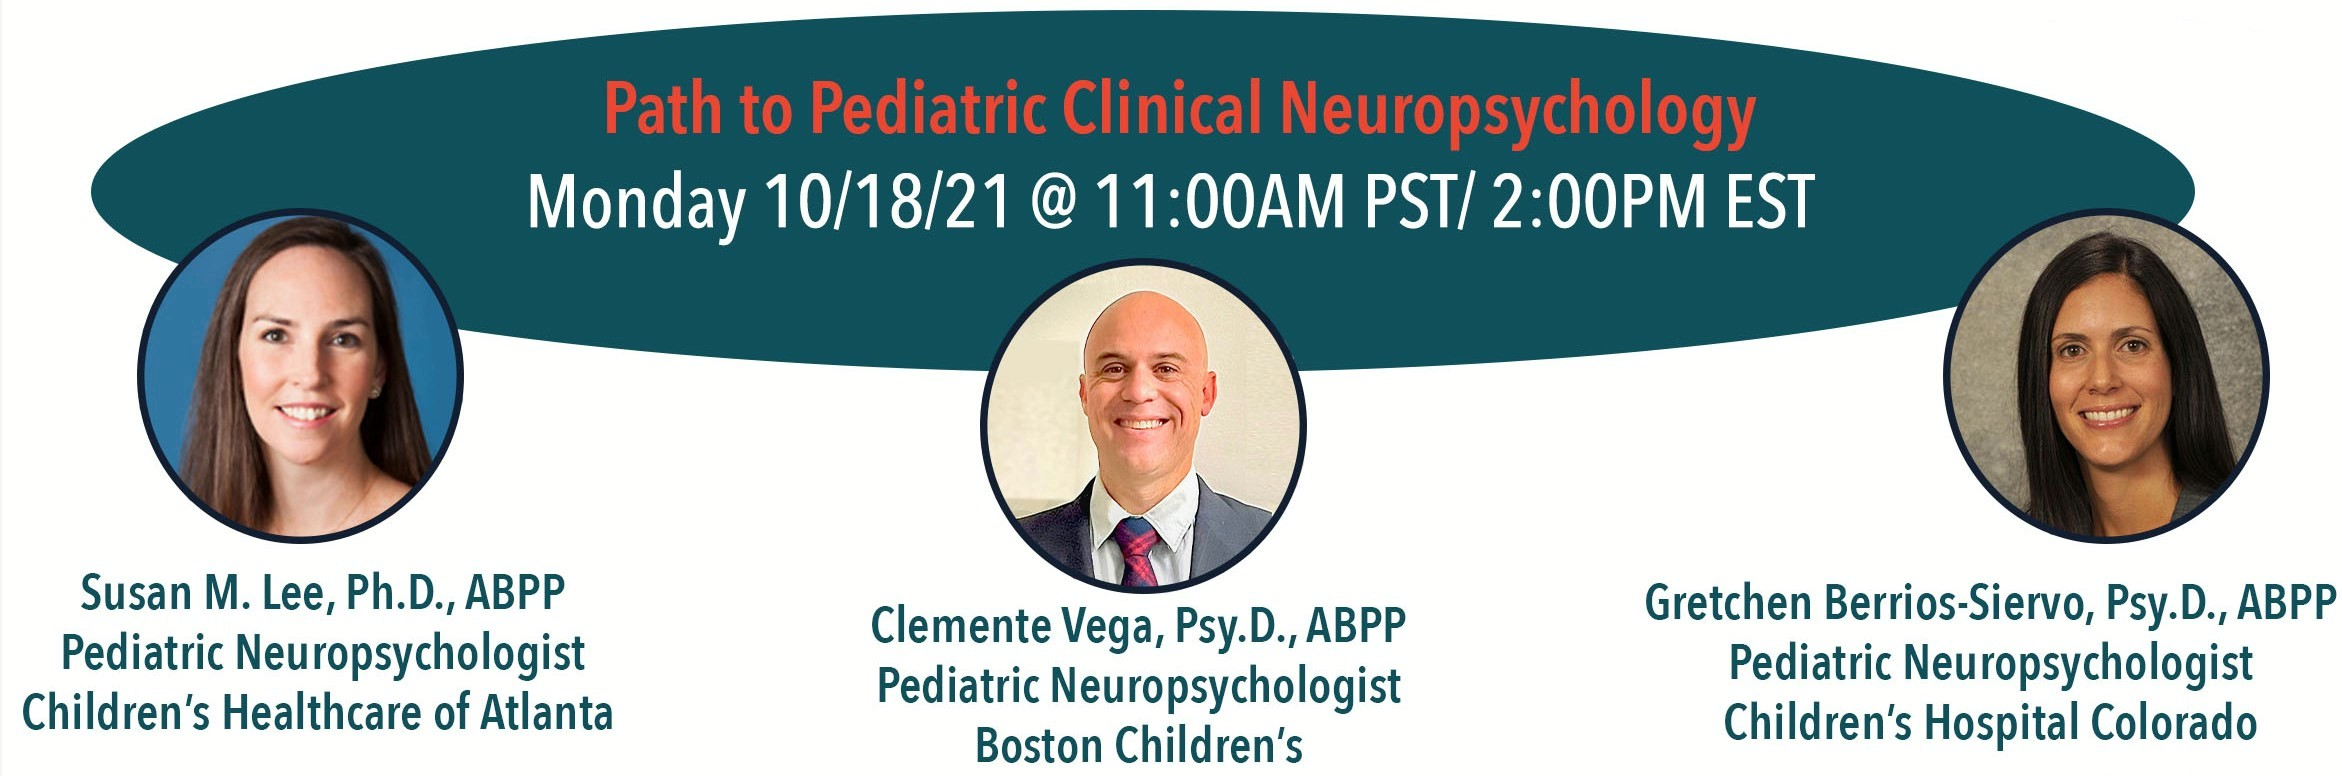 Path to Pediatric Clinical Neuropsychology with Dr. Susan Lee, Dr. Clemente Vega, and Dr. Gretchen Berrios-Siervo